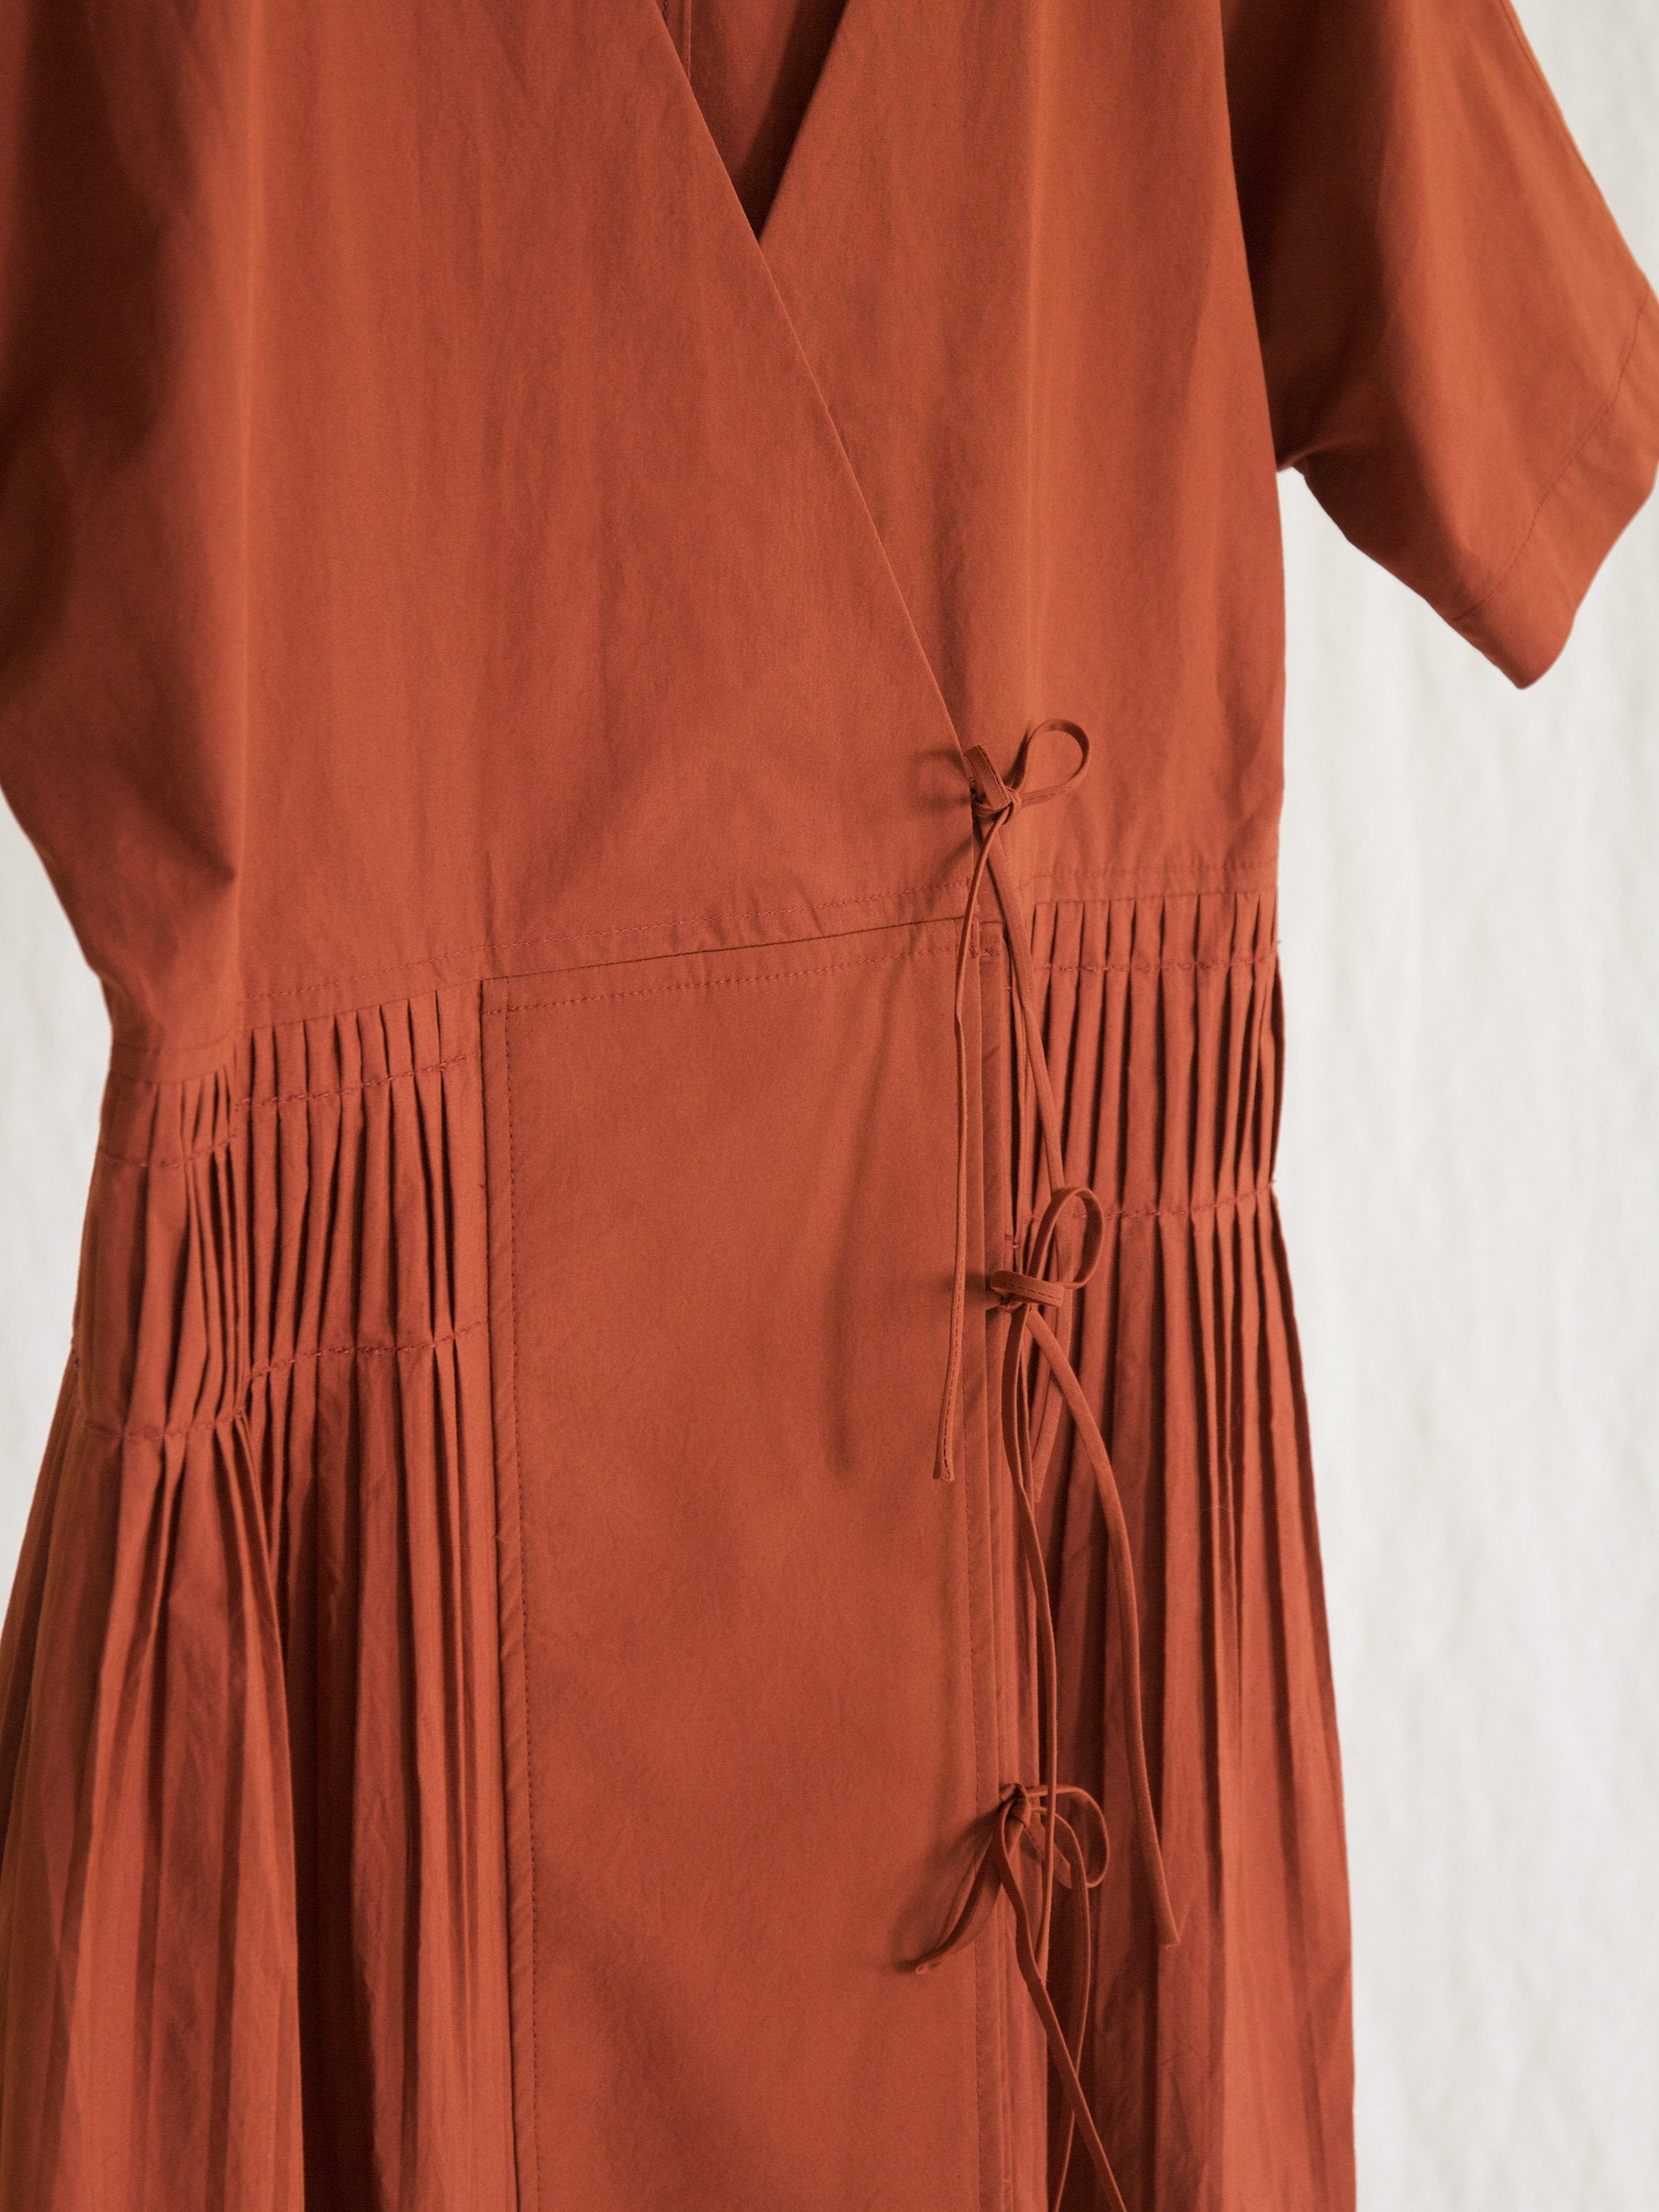 Namu Shop - Caron Callahan Mica Dress - Rust Cotton Poplin